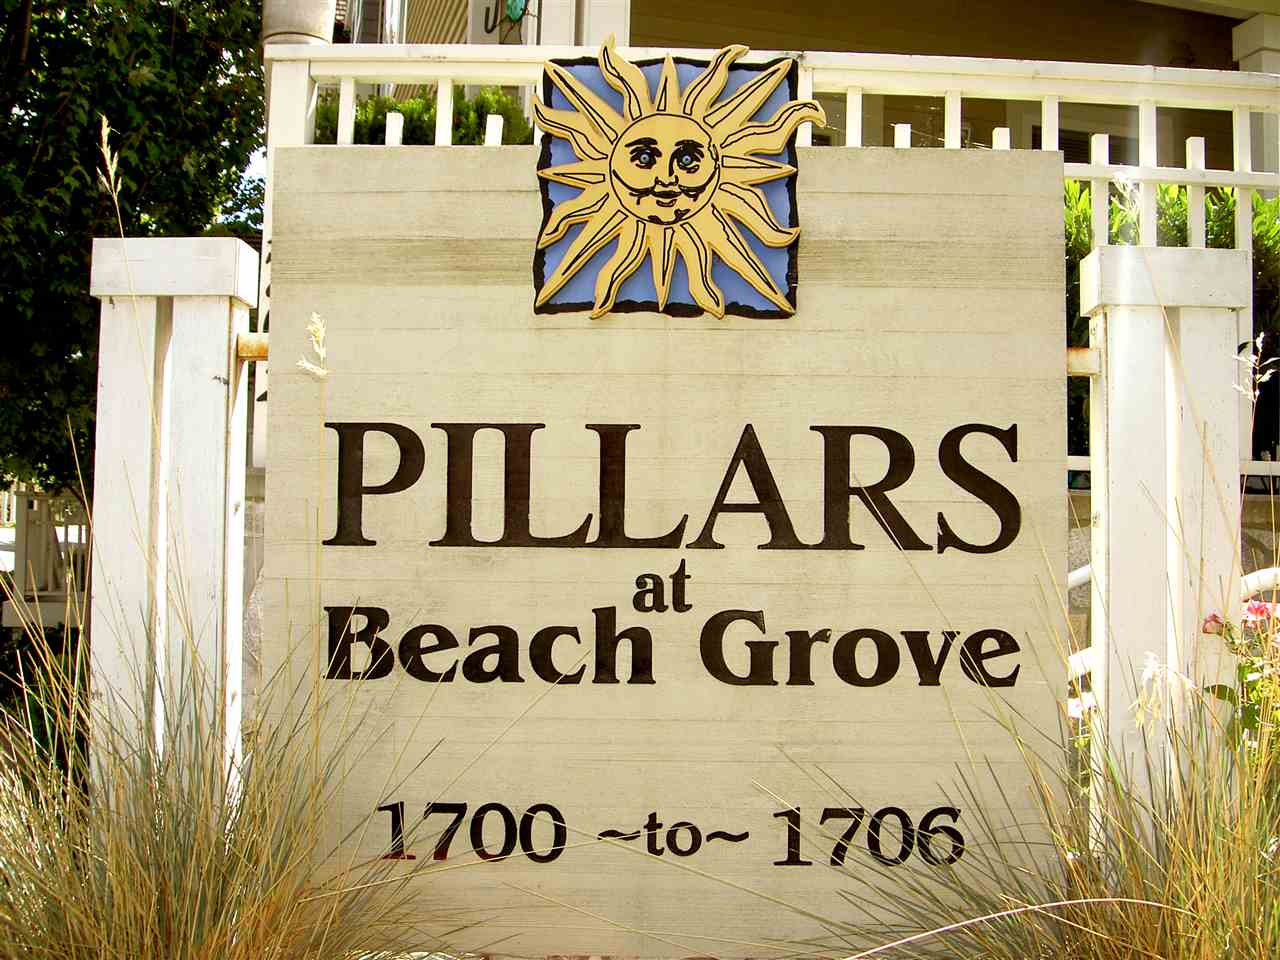 "Welcome to ""The Pillars at Beach Grove""! 2 bedroom, 2.5 bathroom townhome with laminate flooring and stainless appliances. Open concept kitchen with breakfast bar. Huge master bedroom with ensuite and soaker tub. Central location, easily walk to shopping, restaurants, community center and gym. Quick access to highway and ferries. 2 PETS allowed, NO SIZE RESTRICTION."